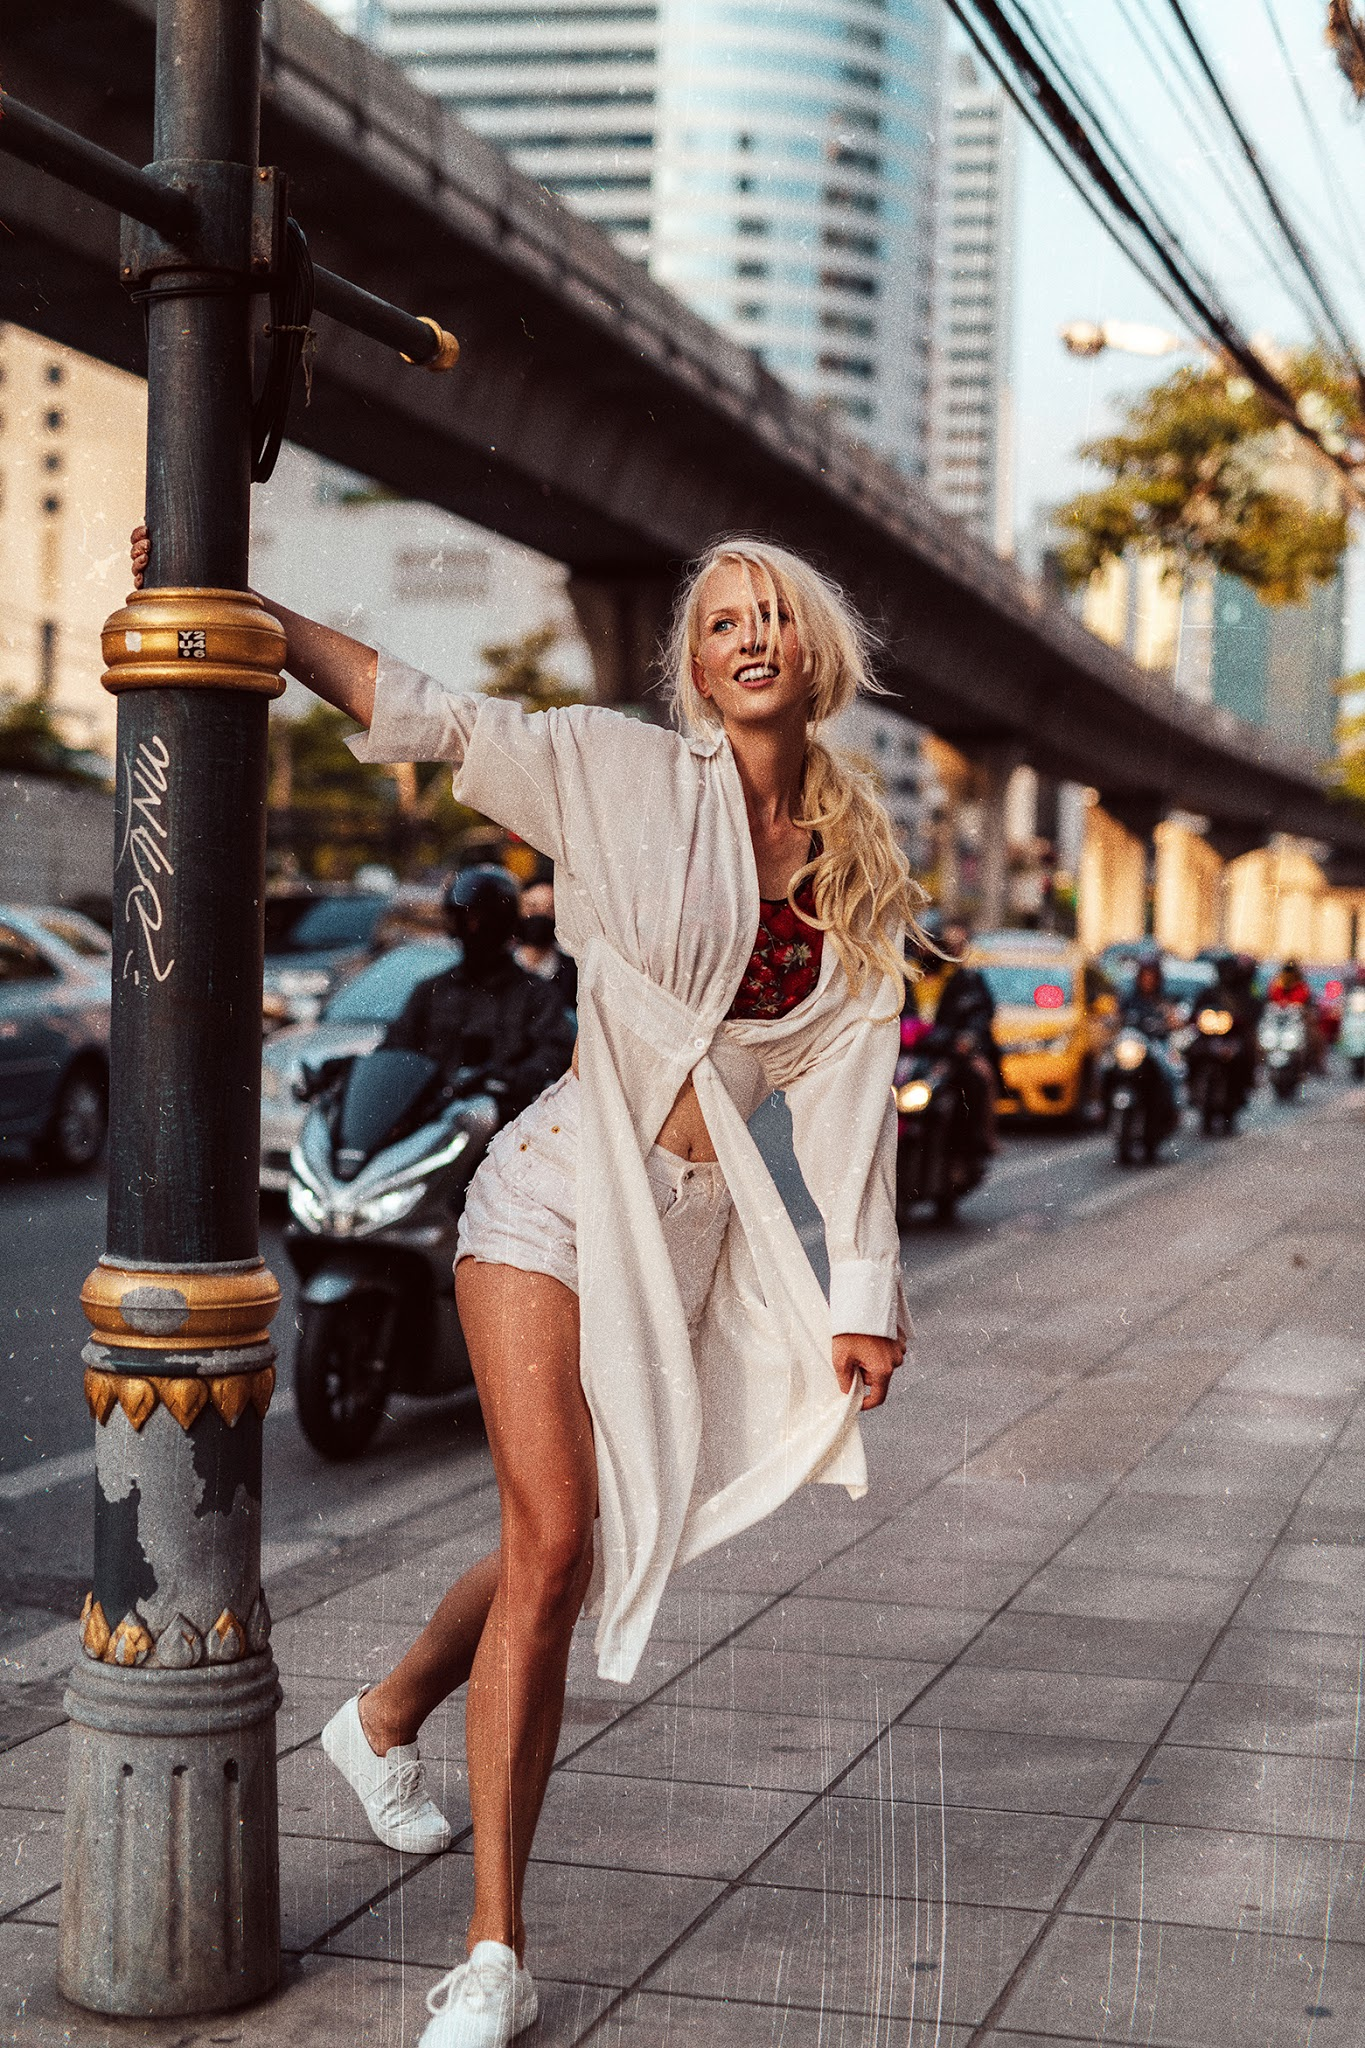 Street Style: The Best Looks from Around the World